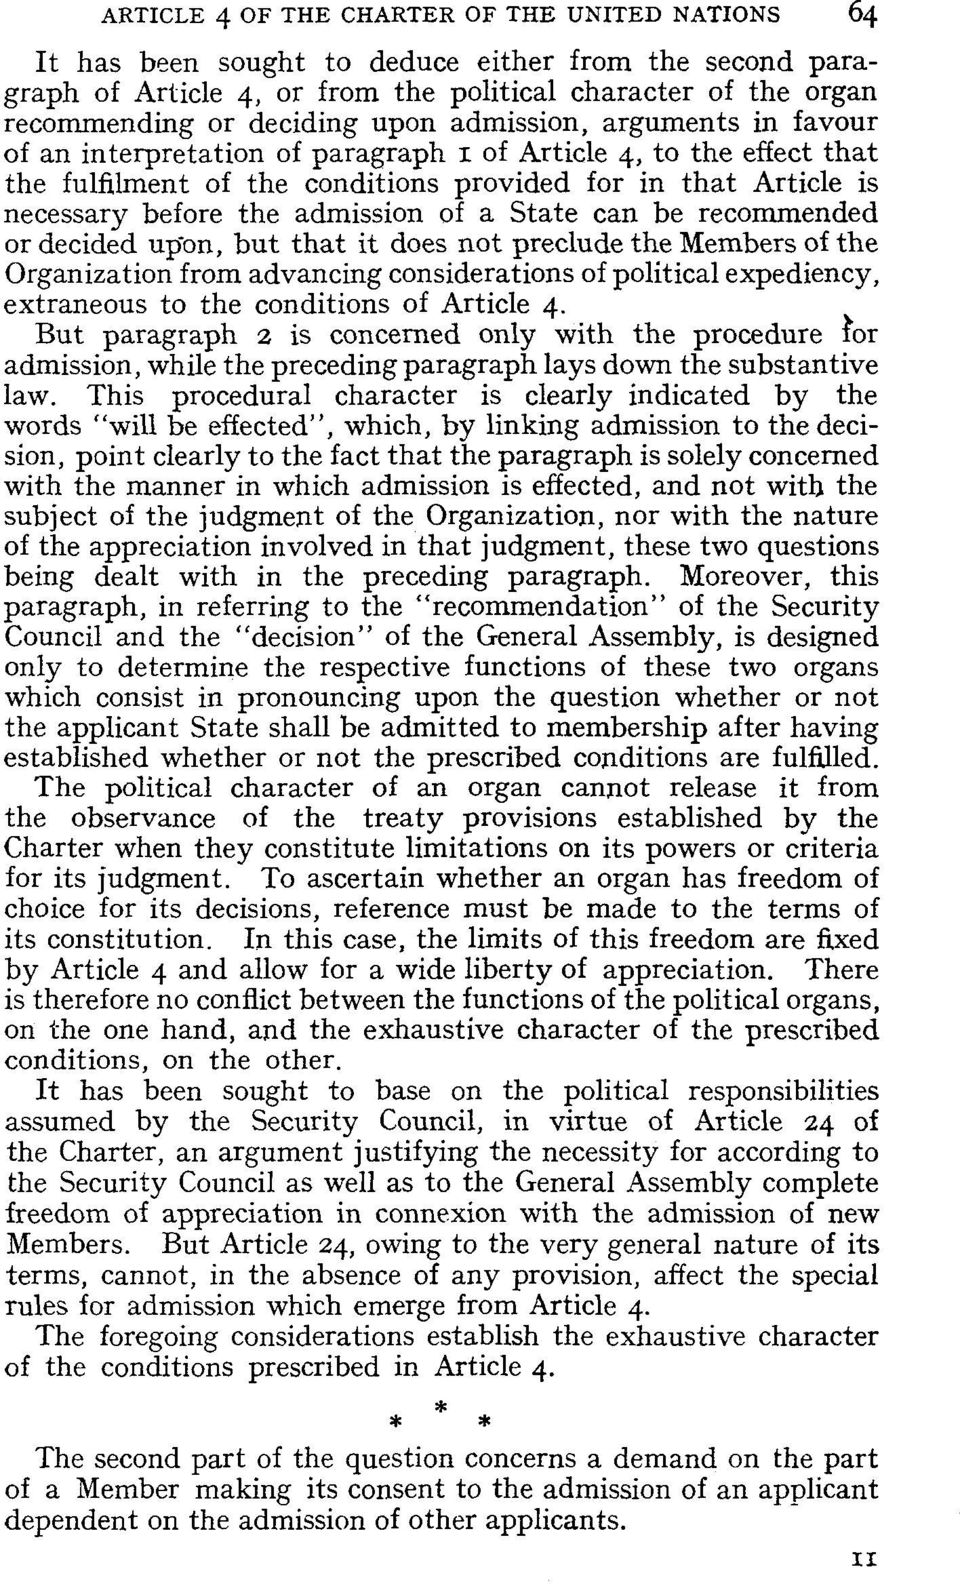 decided upon, but that it does not preclude the Members of the Organization from advancing considerations of political expediency, extraneous to the conditions of Article 4.